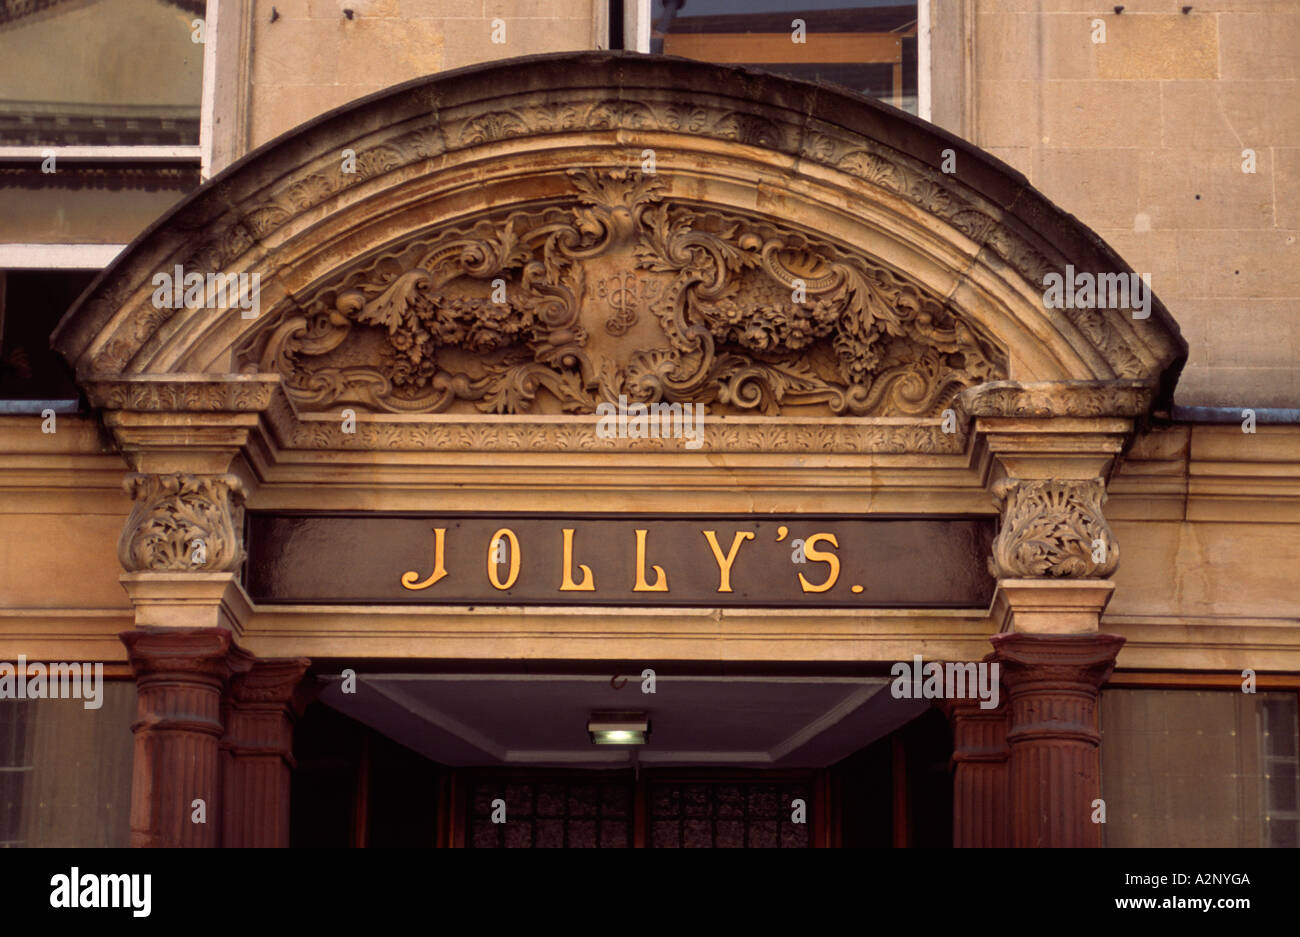 Jollys Department Store Stock Photos & Jollys Department Store Stock ...